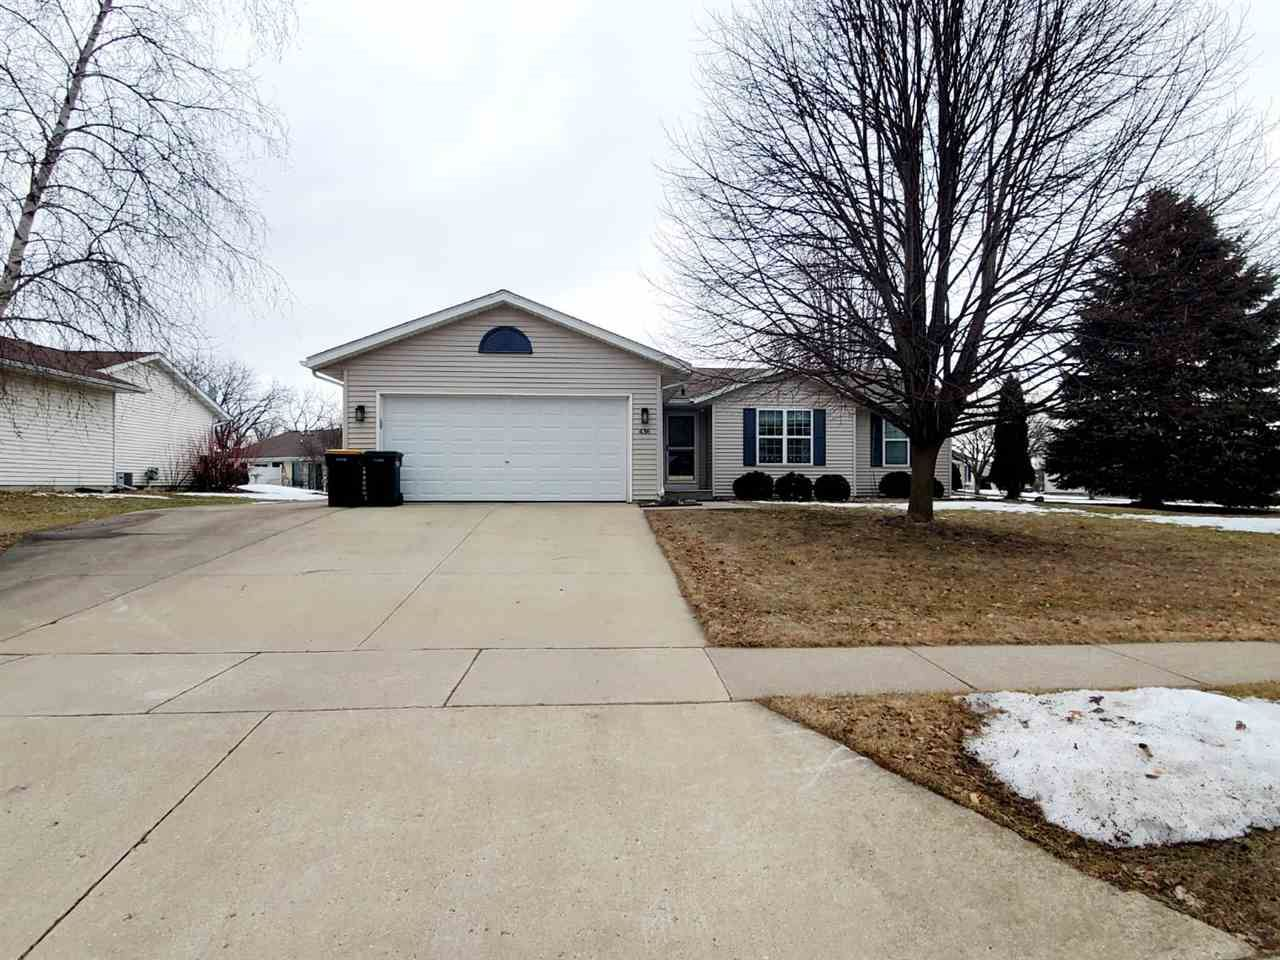 436 Meadowview Ln, Marshall, WI 53559 - #: 1879221